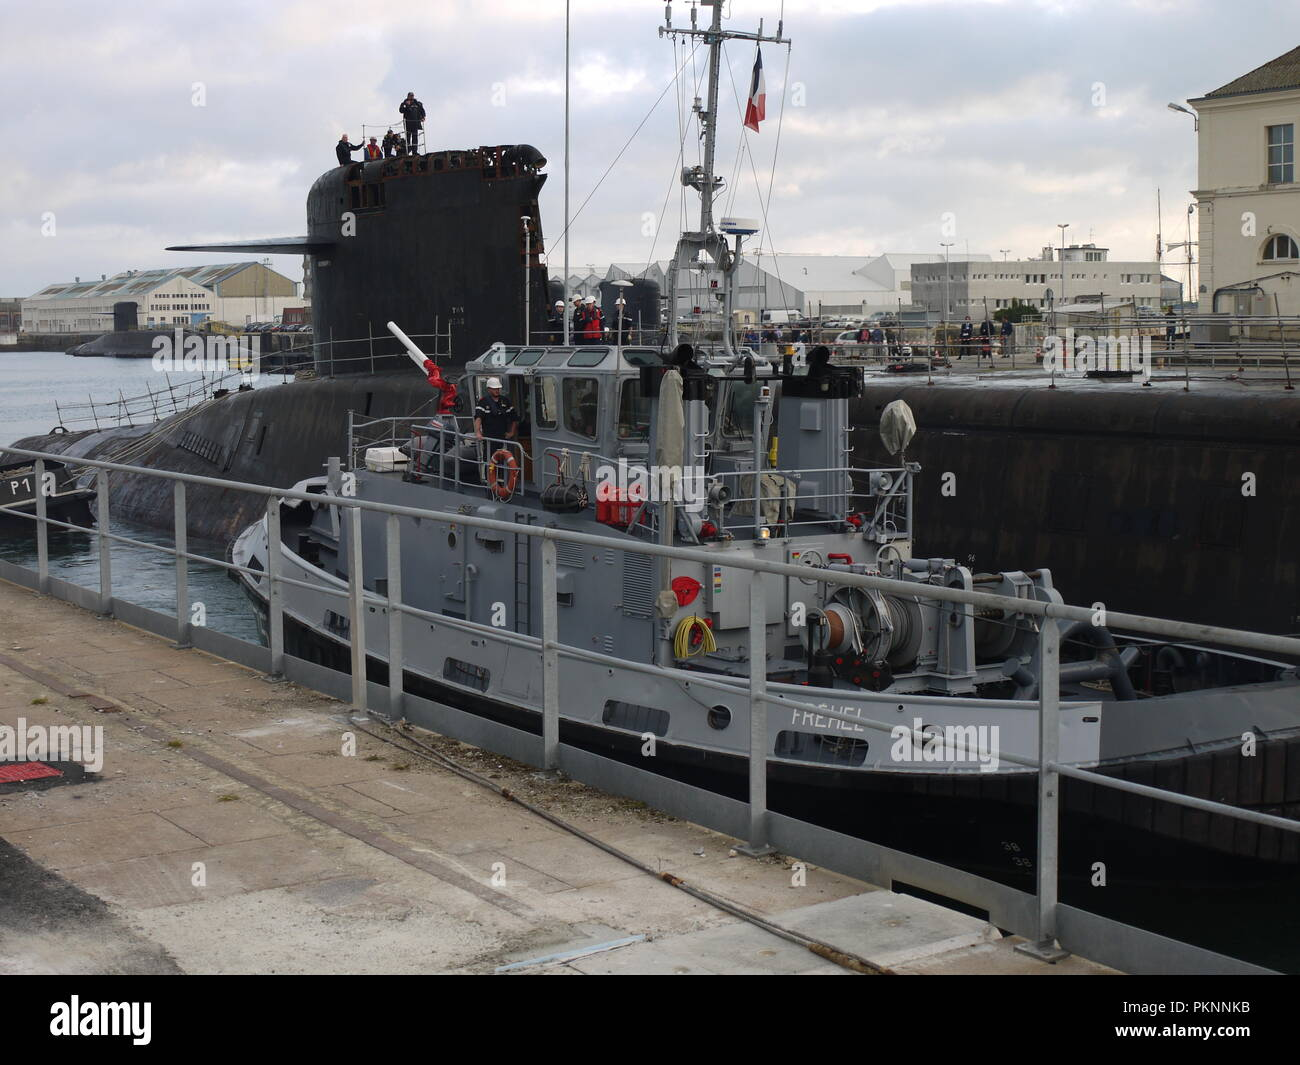 French nuclear submarine missile launcher Le Tonnant before deconstruction in Cherbourg (Normandy) Stock Photo